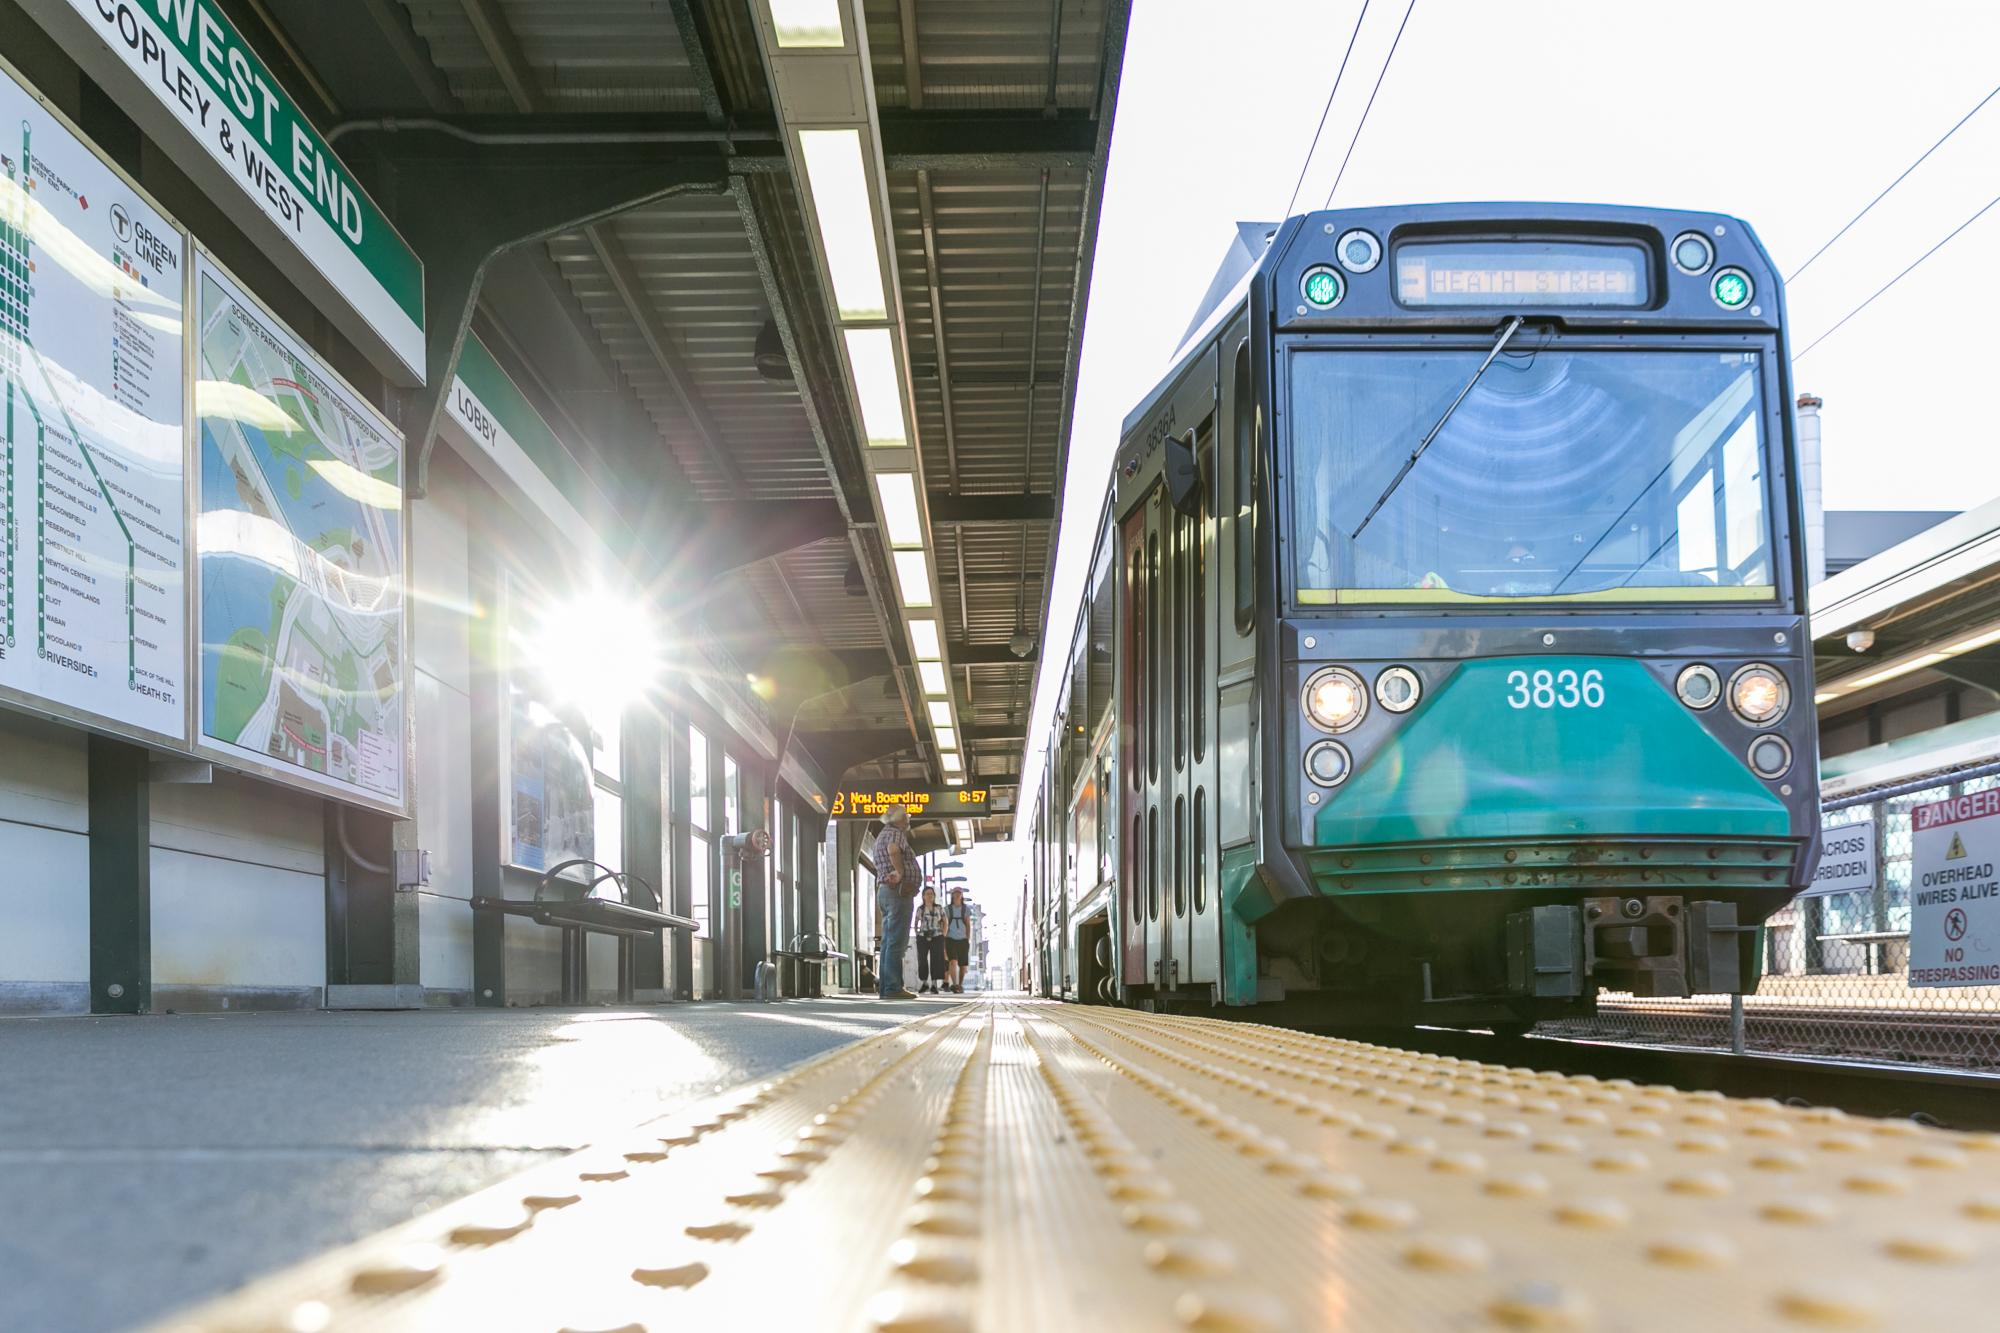 Green Line train pulls into Science Park/West End Station, with sunlight in the background.